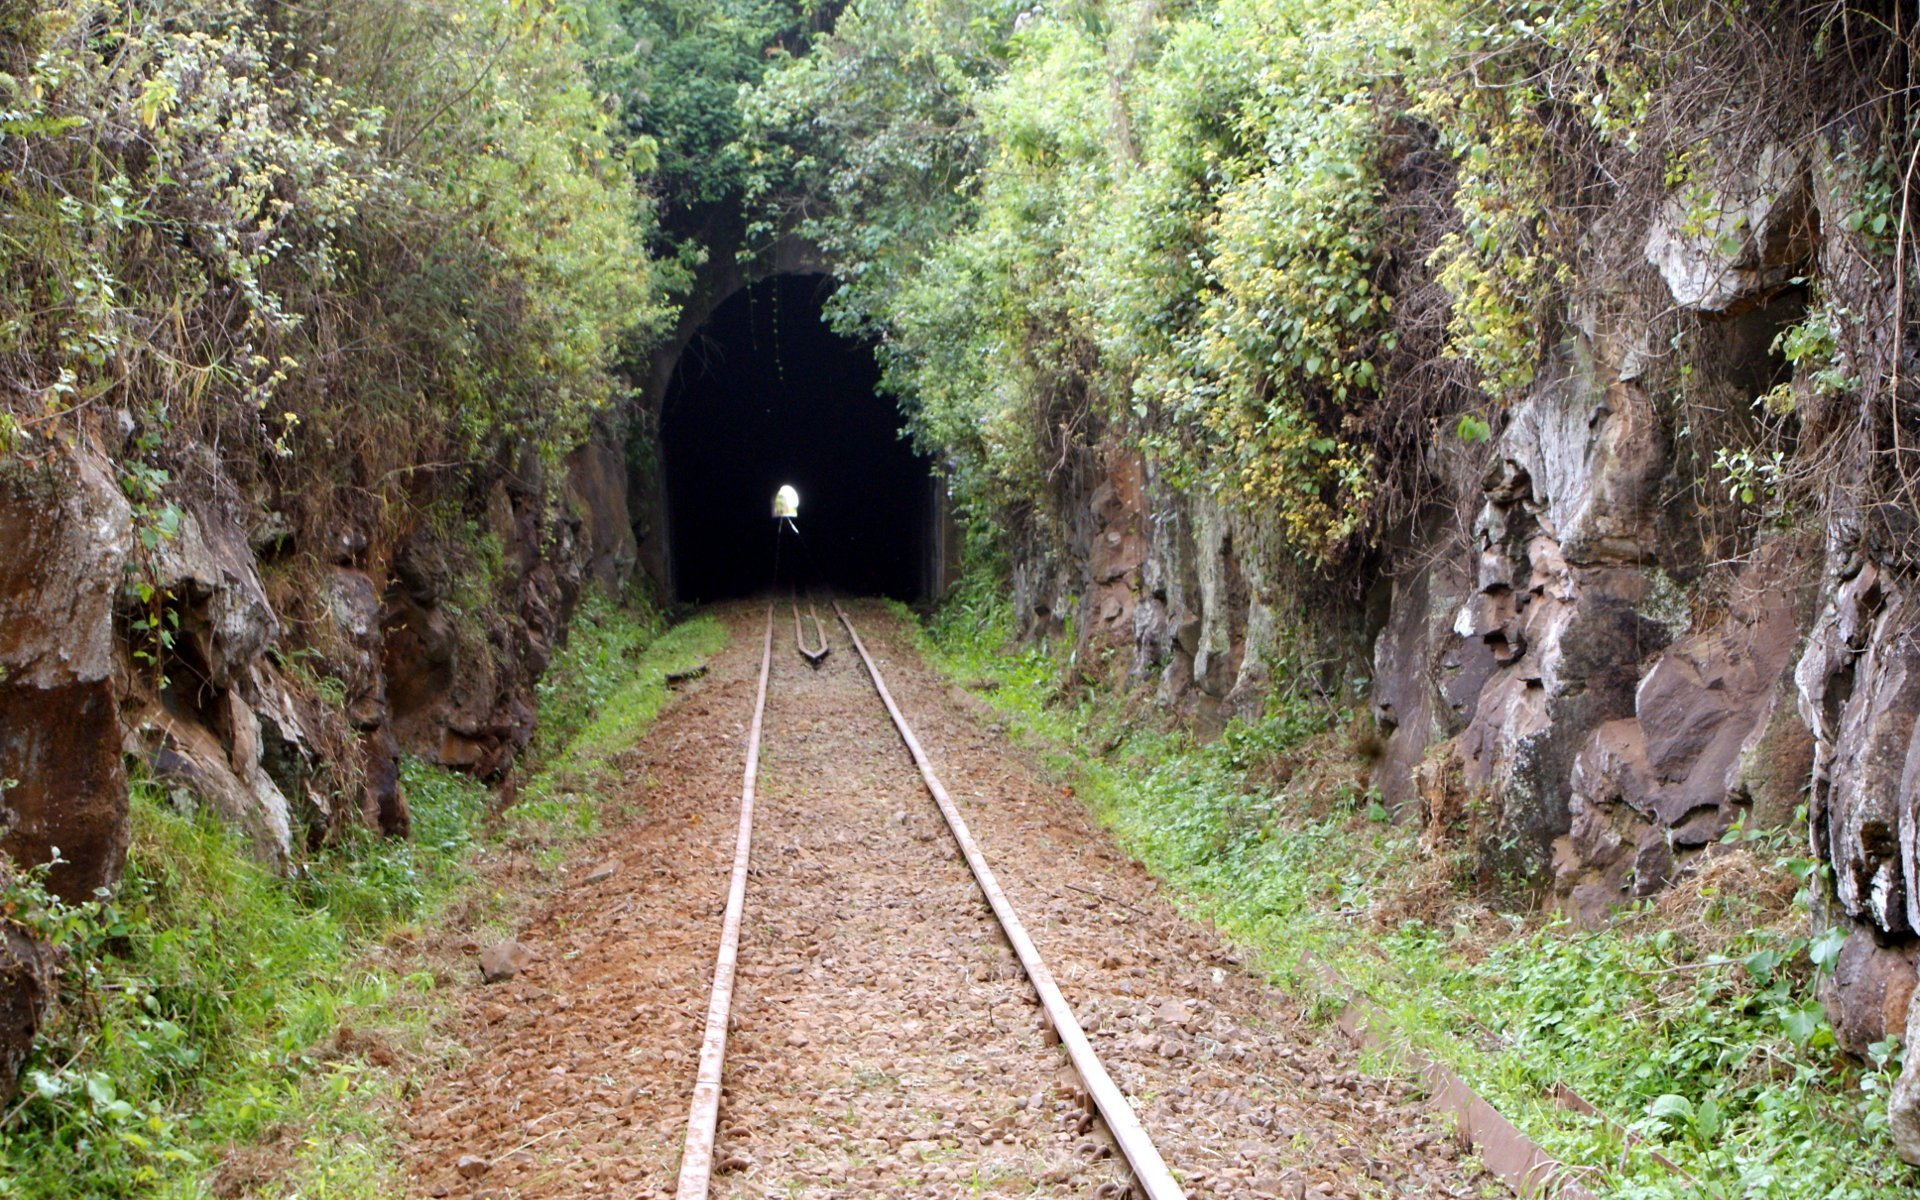 In Limuru exists the longest train tunnel in Kenya, the Buxton Tunnel.